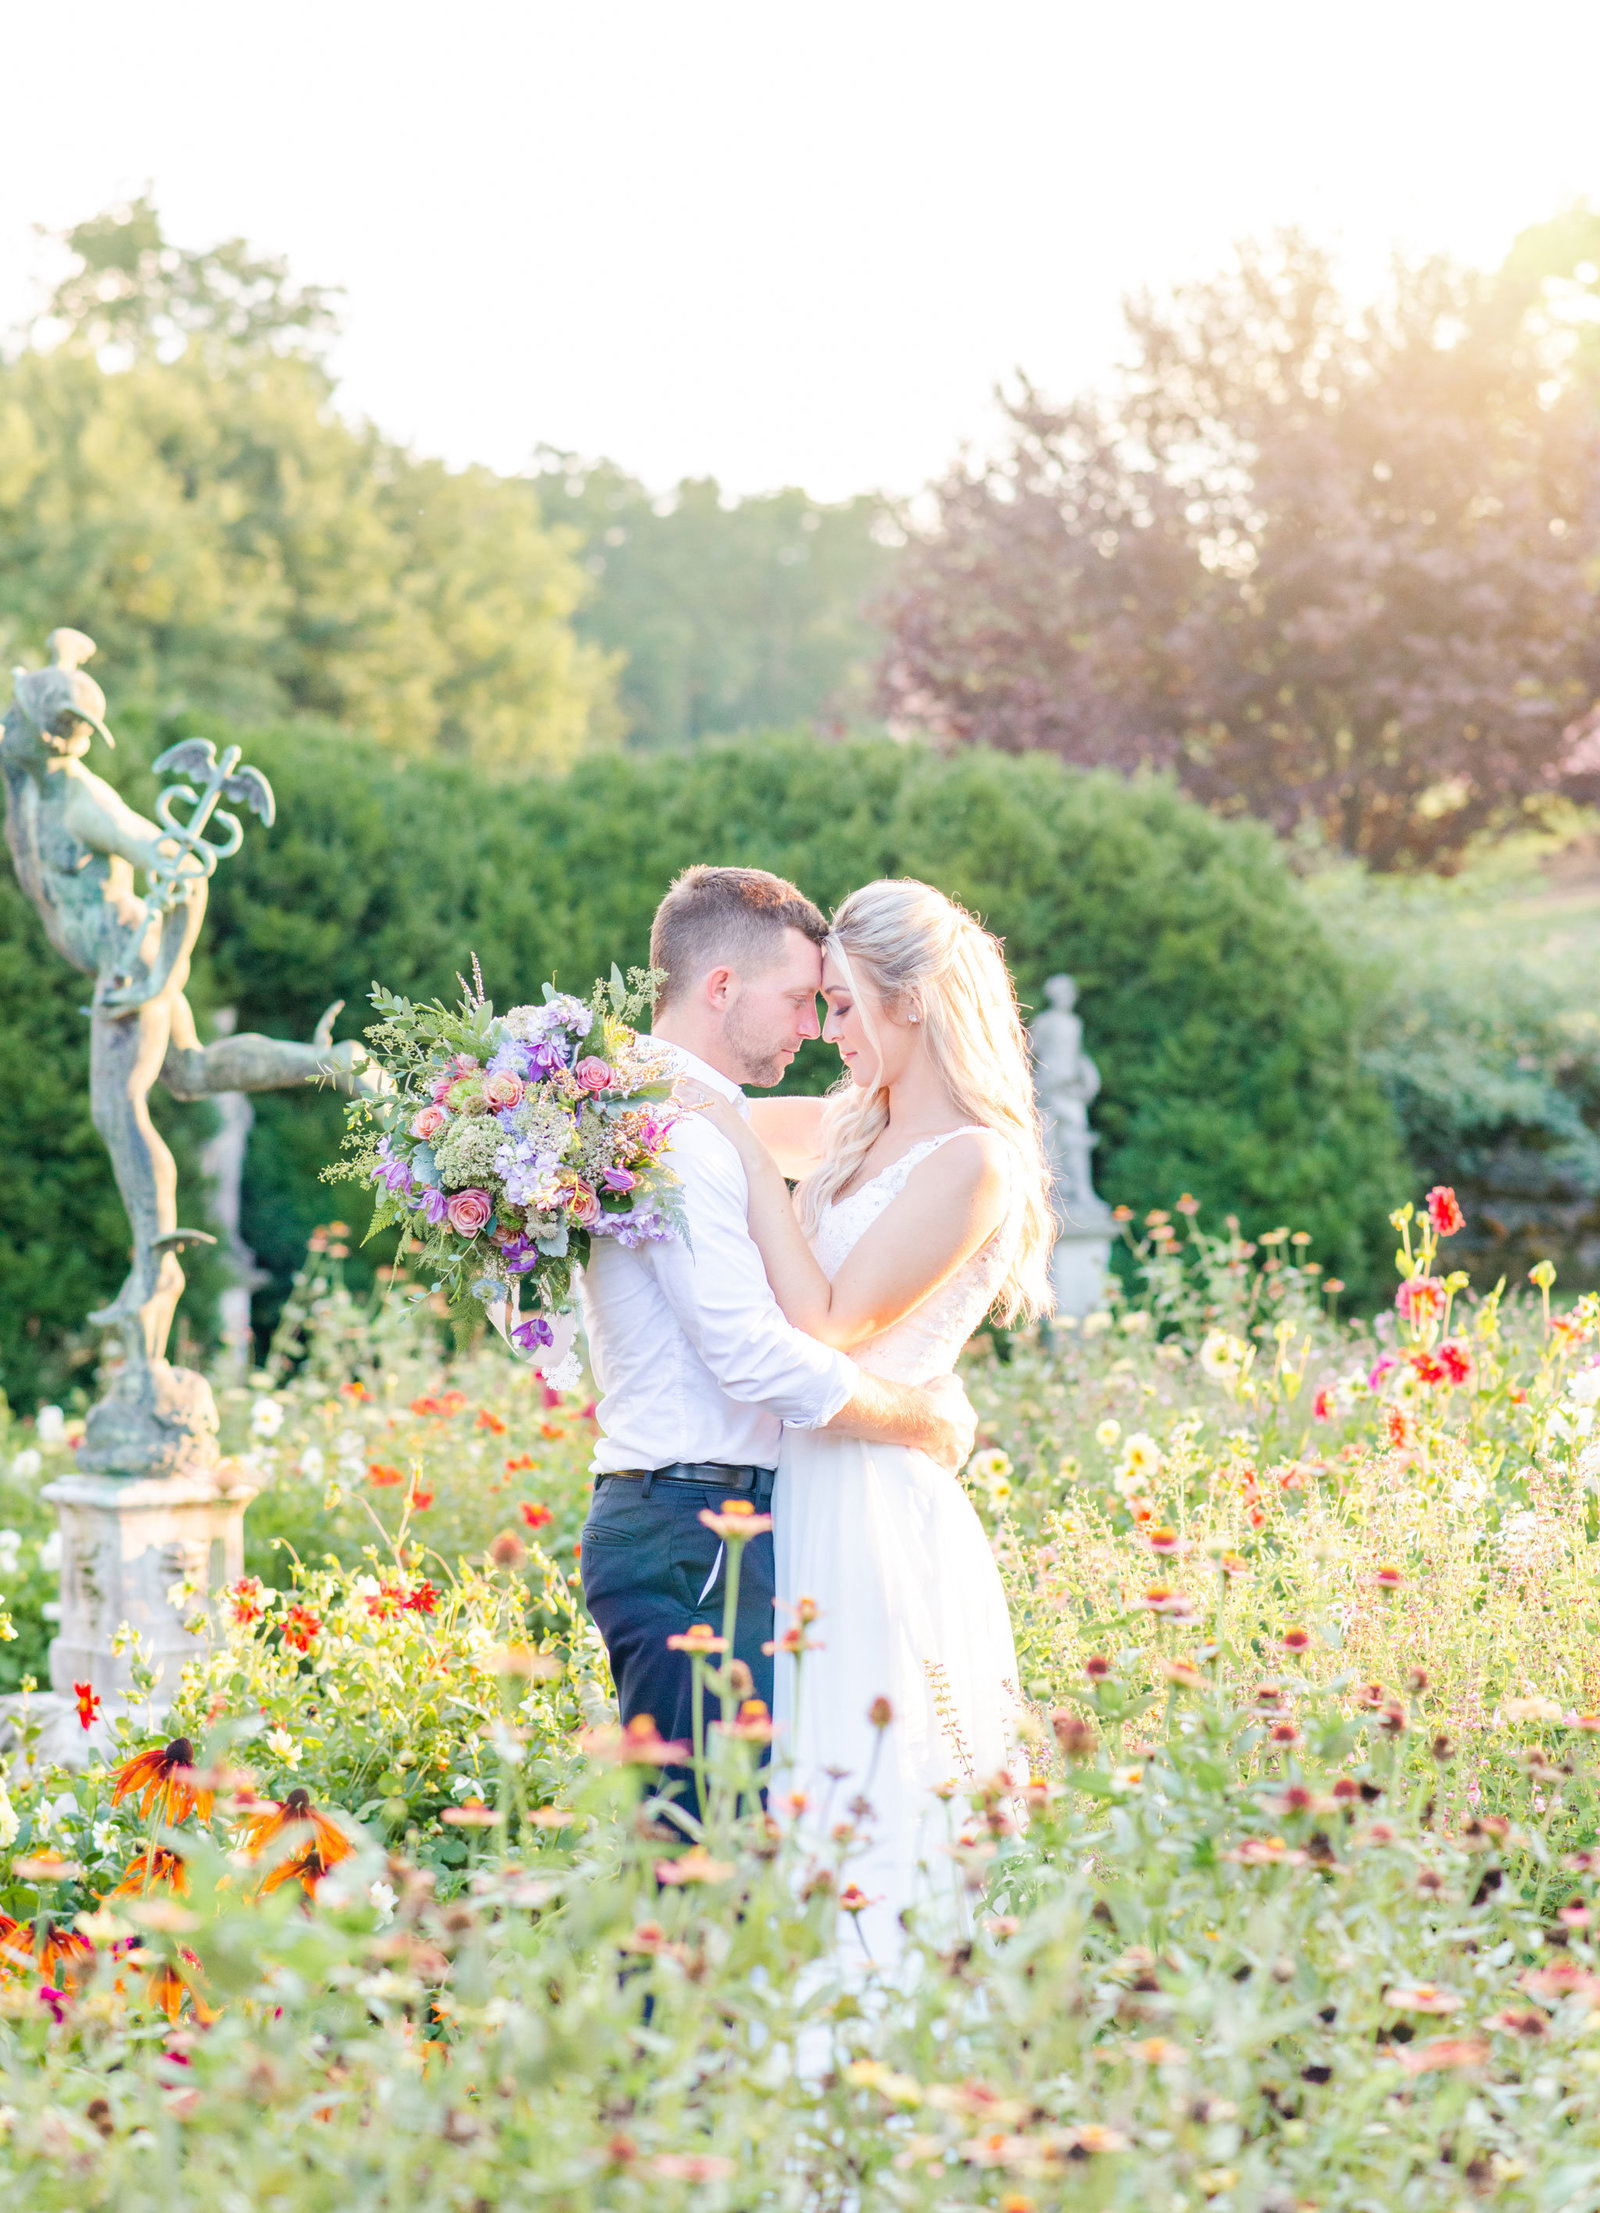 Wedding couple embracing in garden